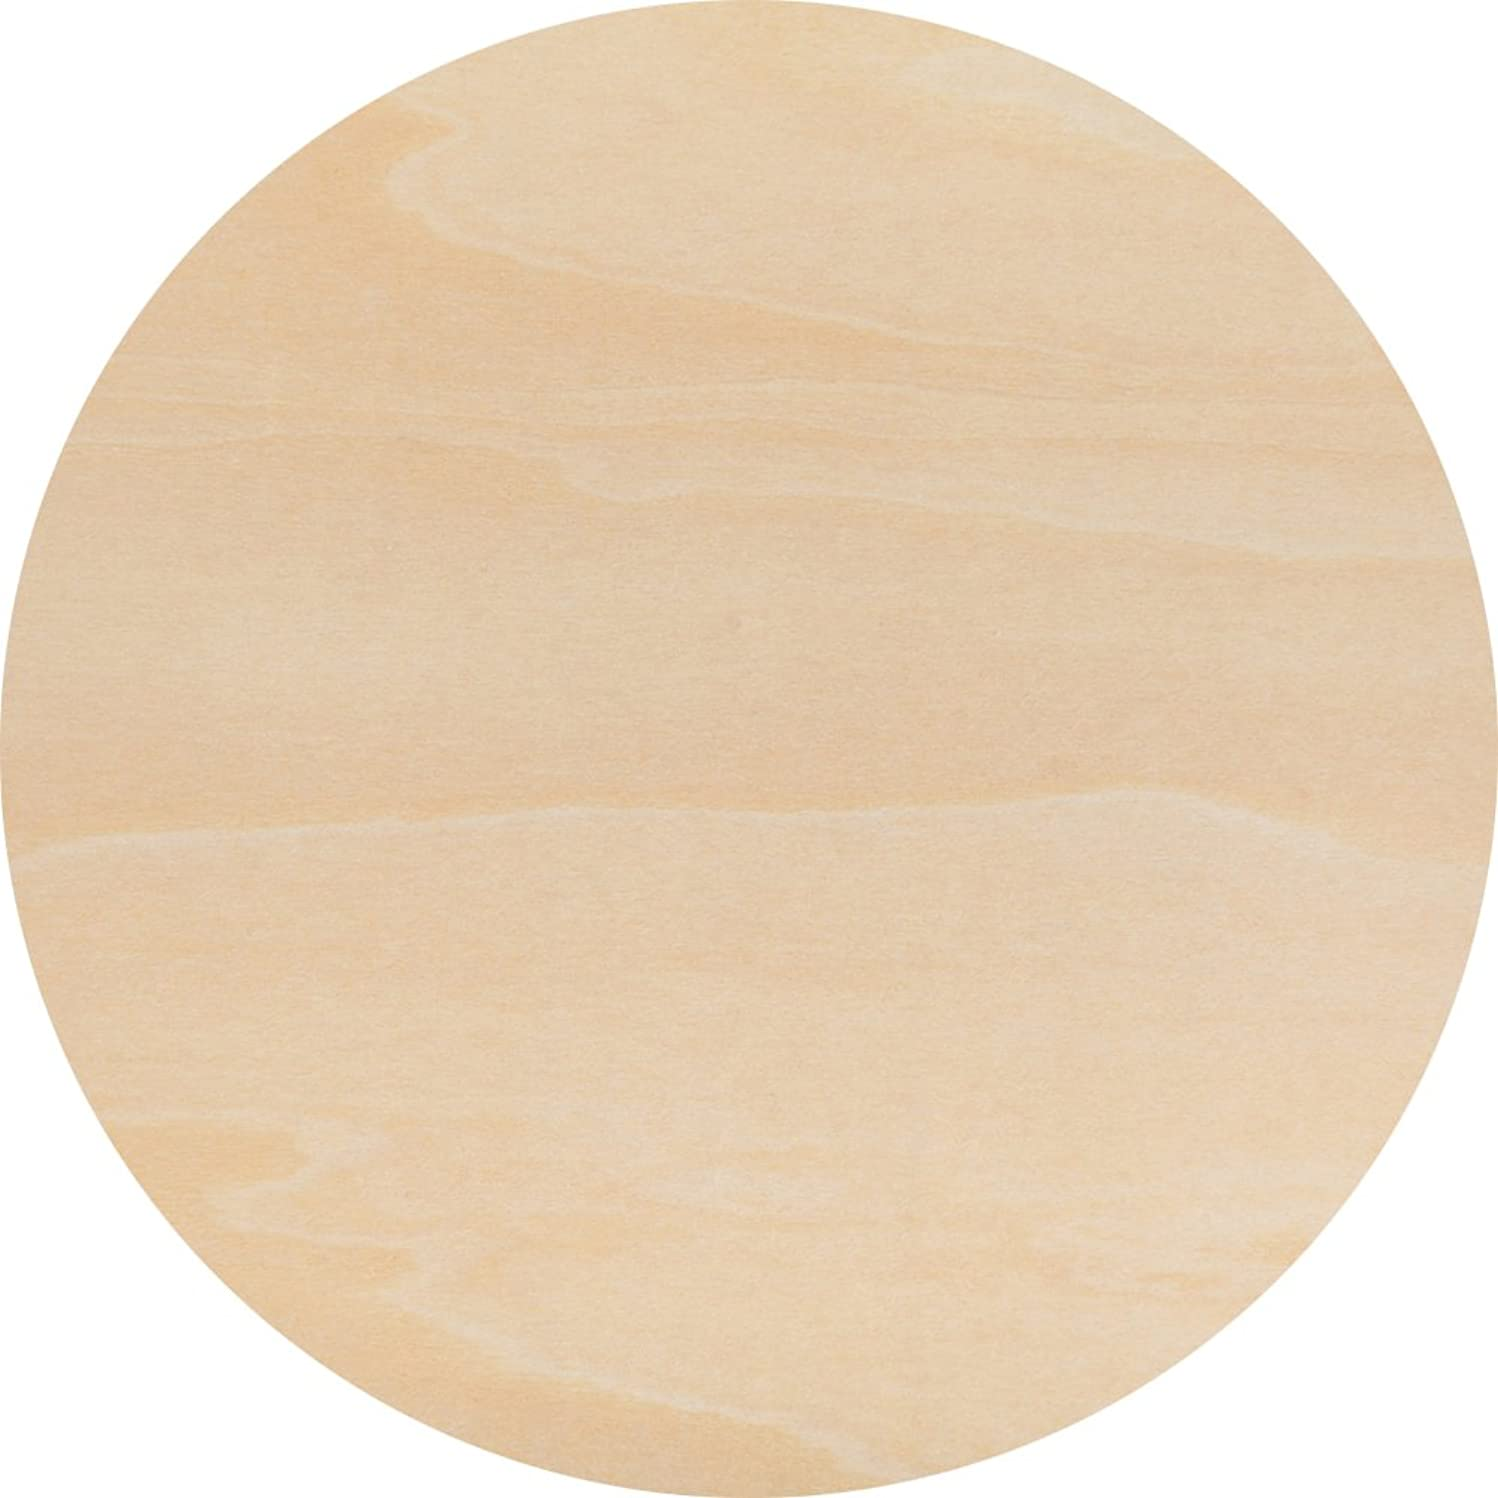 Wooden Circle Sizes Woodpeckers (18